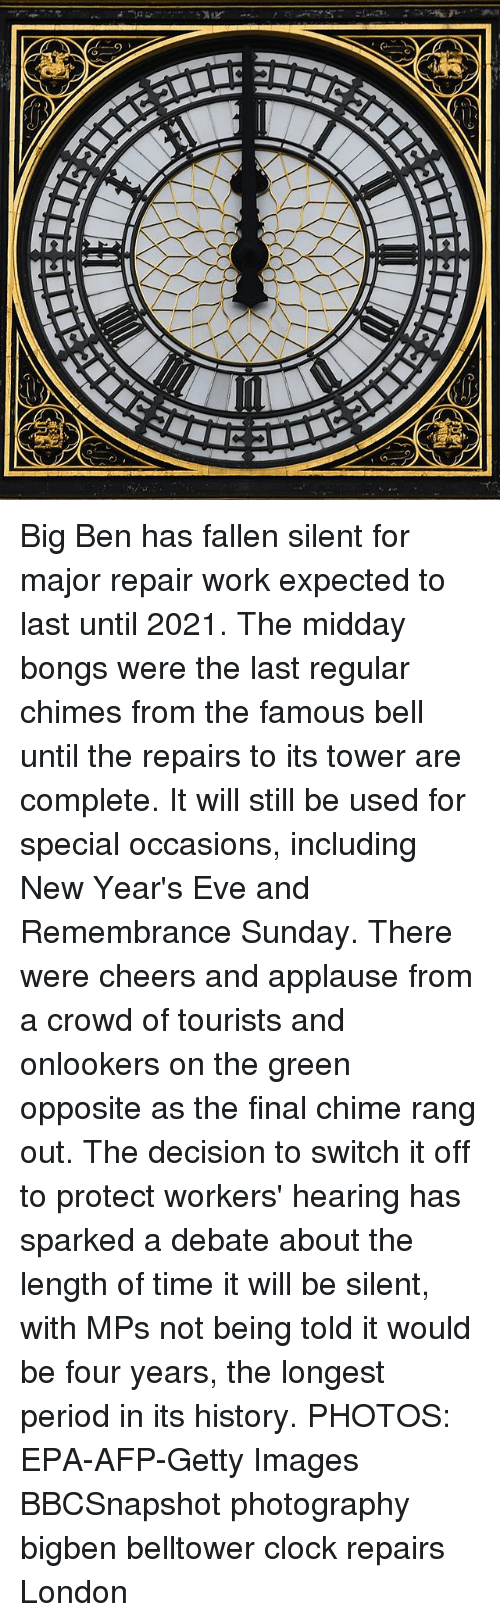 specialization: Big Ben has fallen silent for major repair work expected to last until 2021. The midday bongs were the last regular chimes from the famous bell until the repairs to its tower are complete. It will still be used for special occasions, including New Year's Eve and Remembrance Sunday. There were cheers and applause from a crowd of tourists and onlookers on the green opposite as the final chime rang out. The decision to switch it off to protect workers' hearing has sparked a debate about the length of time it will be silent, with MPs not being told it would be four years, the longest period in its history. PHOTOS: EPA-AFP-Getty Images BBCSnapshot photography bigben belltower clock repairs London